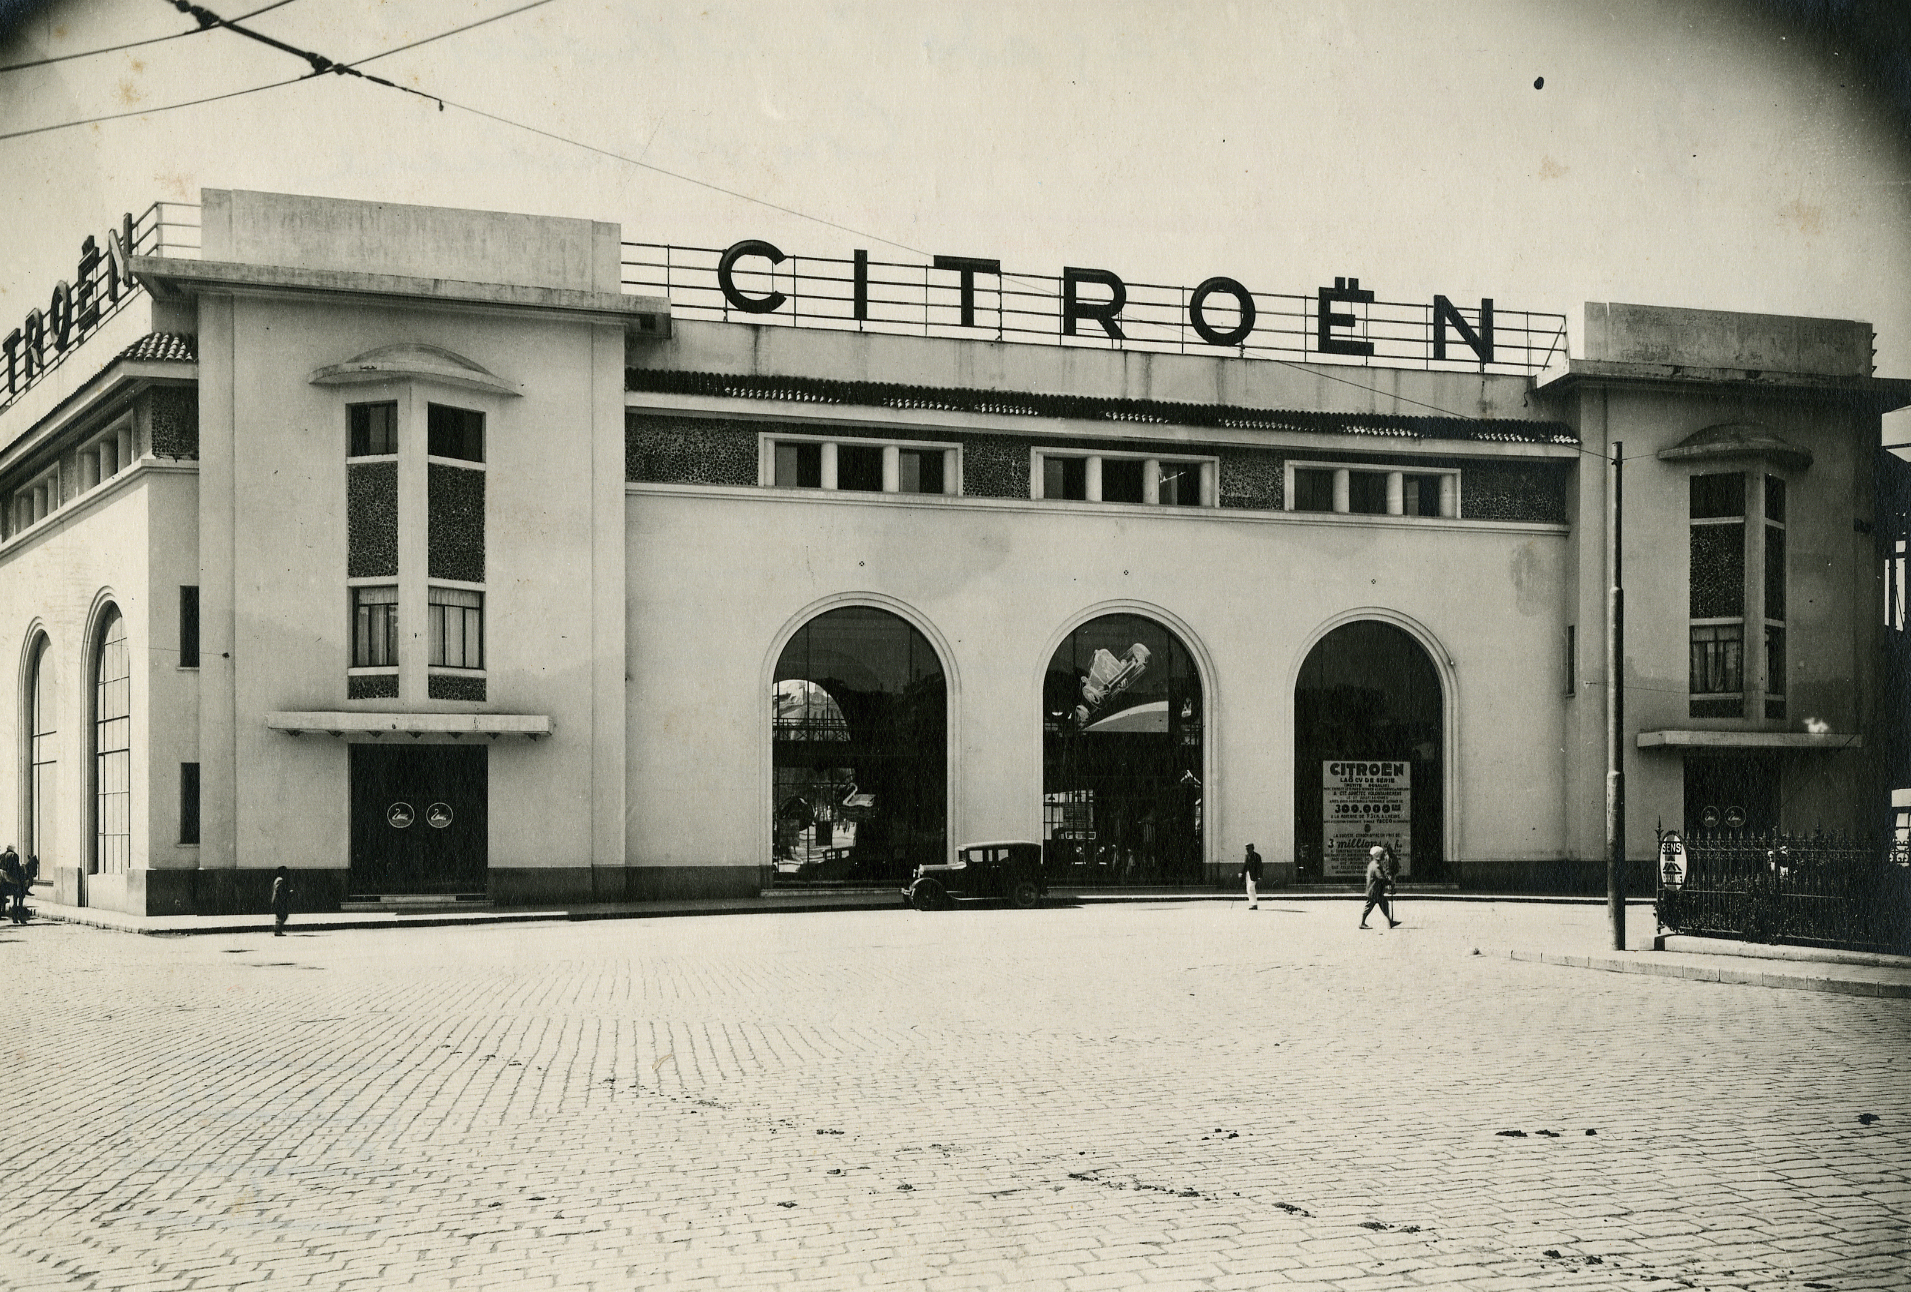 Ancien garage citro n constantine archives d for Garage citroen clisson